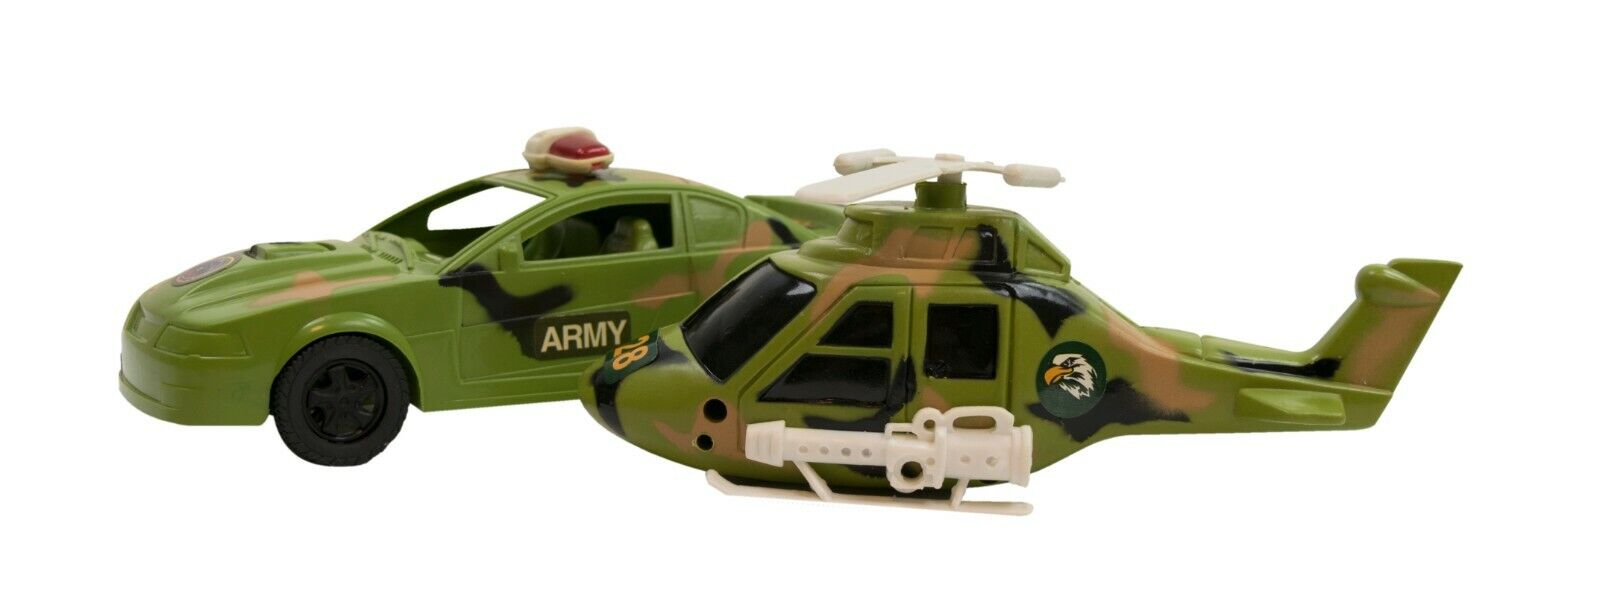 BOYS TOY ARMY ARMORED MILITARY VEHICLE PATROL CAR GUNNER SOUNDS LIGHTS